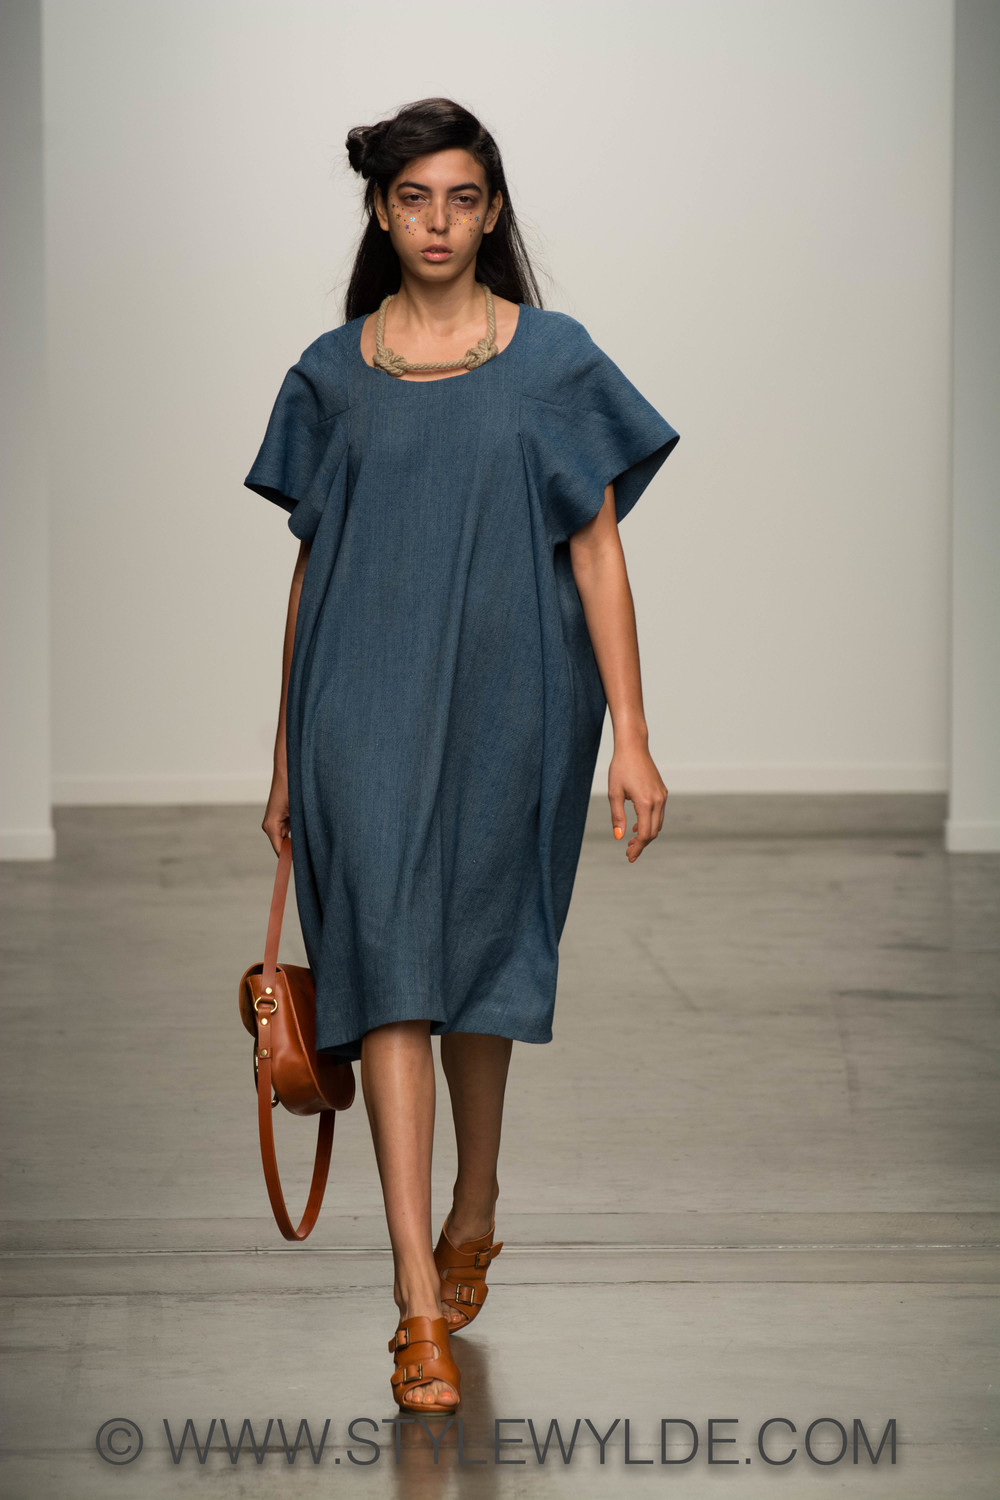 StyleWylde_adetacher_FOH_SS15_sw (27 of 37).jpg